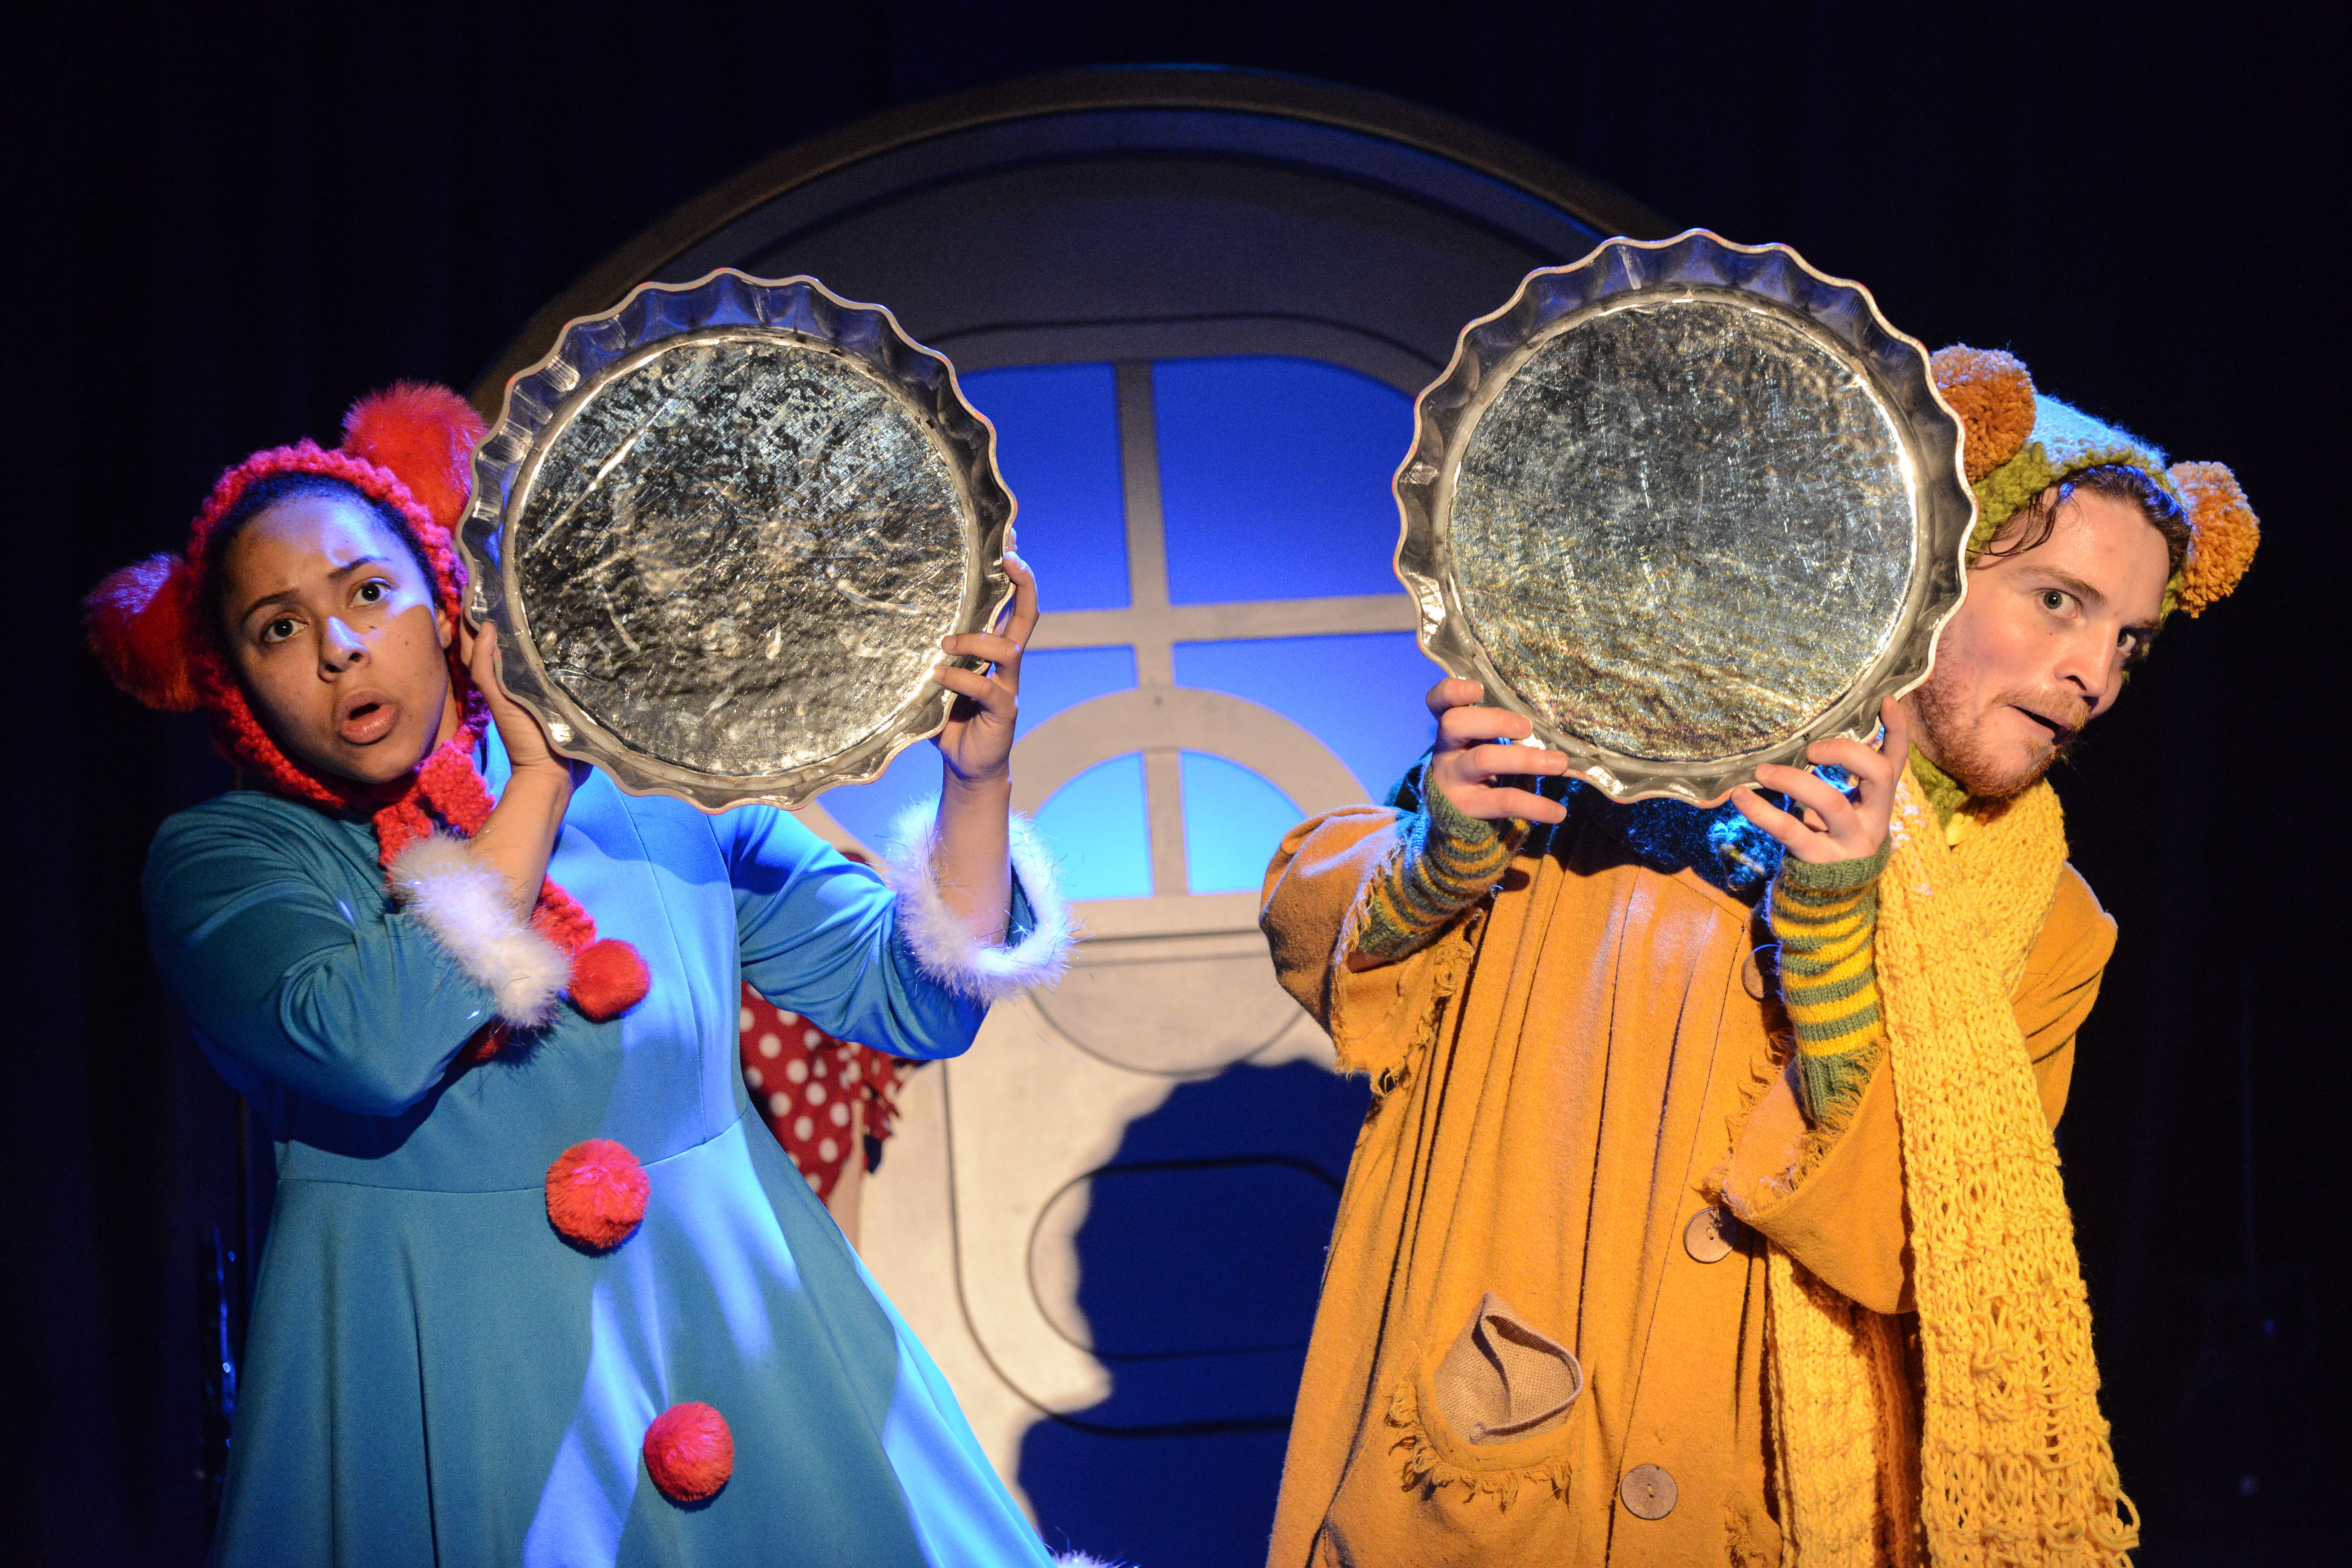 be58de0c71ac Town Mouse and Country Mouse encourages the children and adults in the  audience to join in and this reviewer loved scaring off the big cat with a  great deal ...